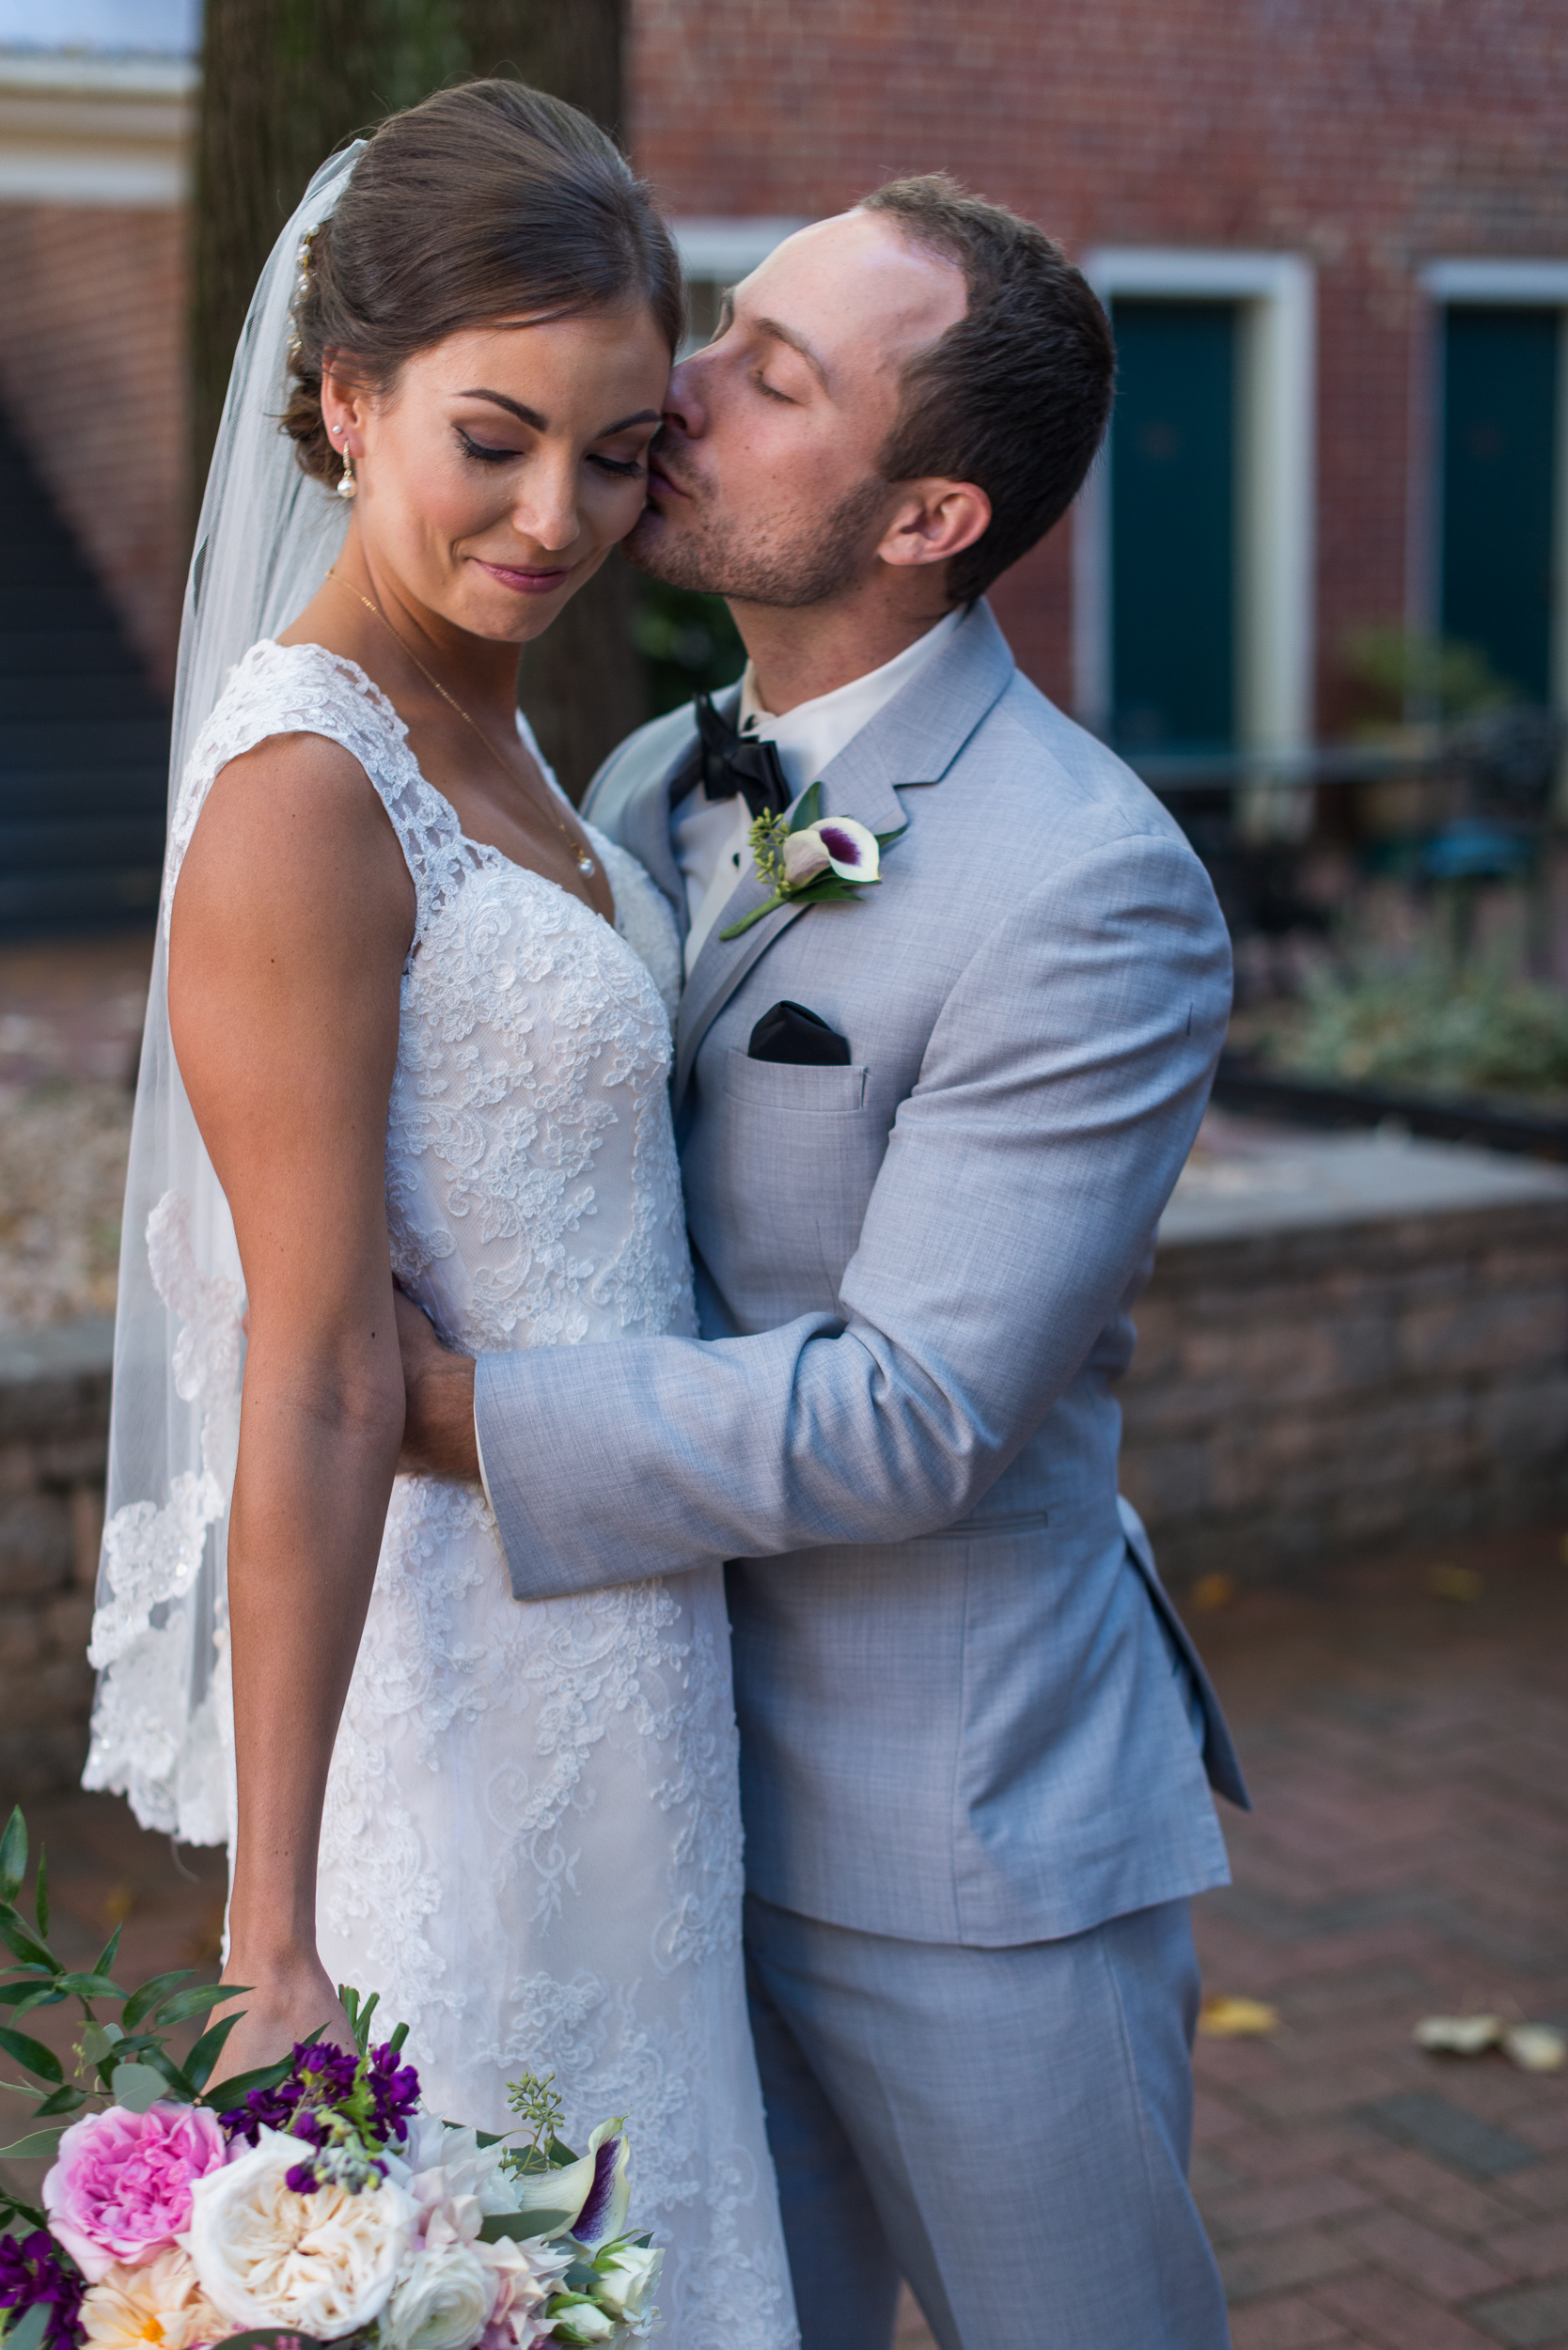 A groom kisses his bride's temple and holds her waist after their wedding in fairfax, virginia